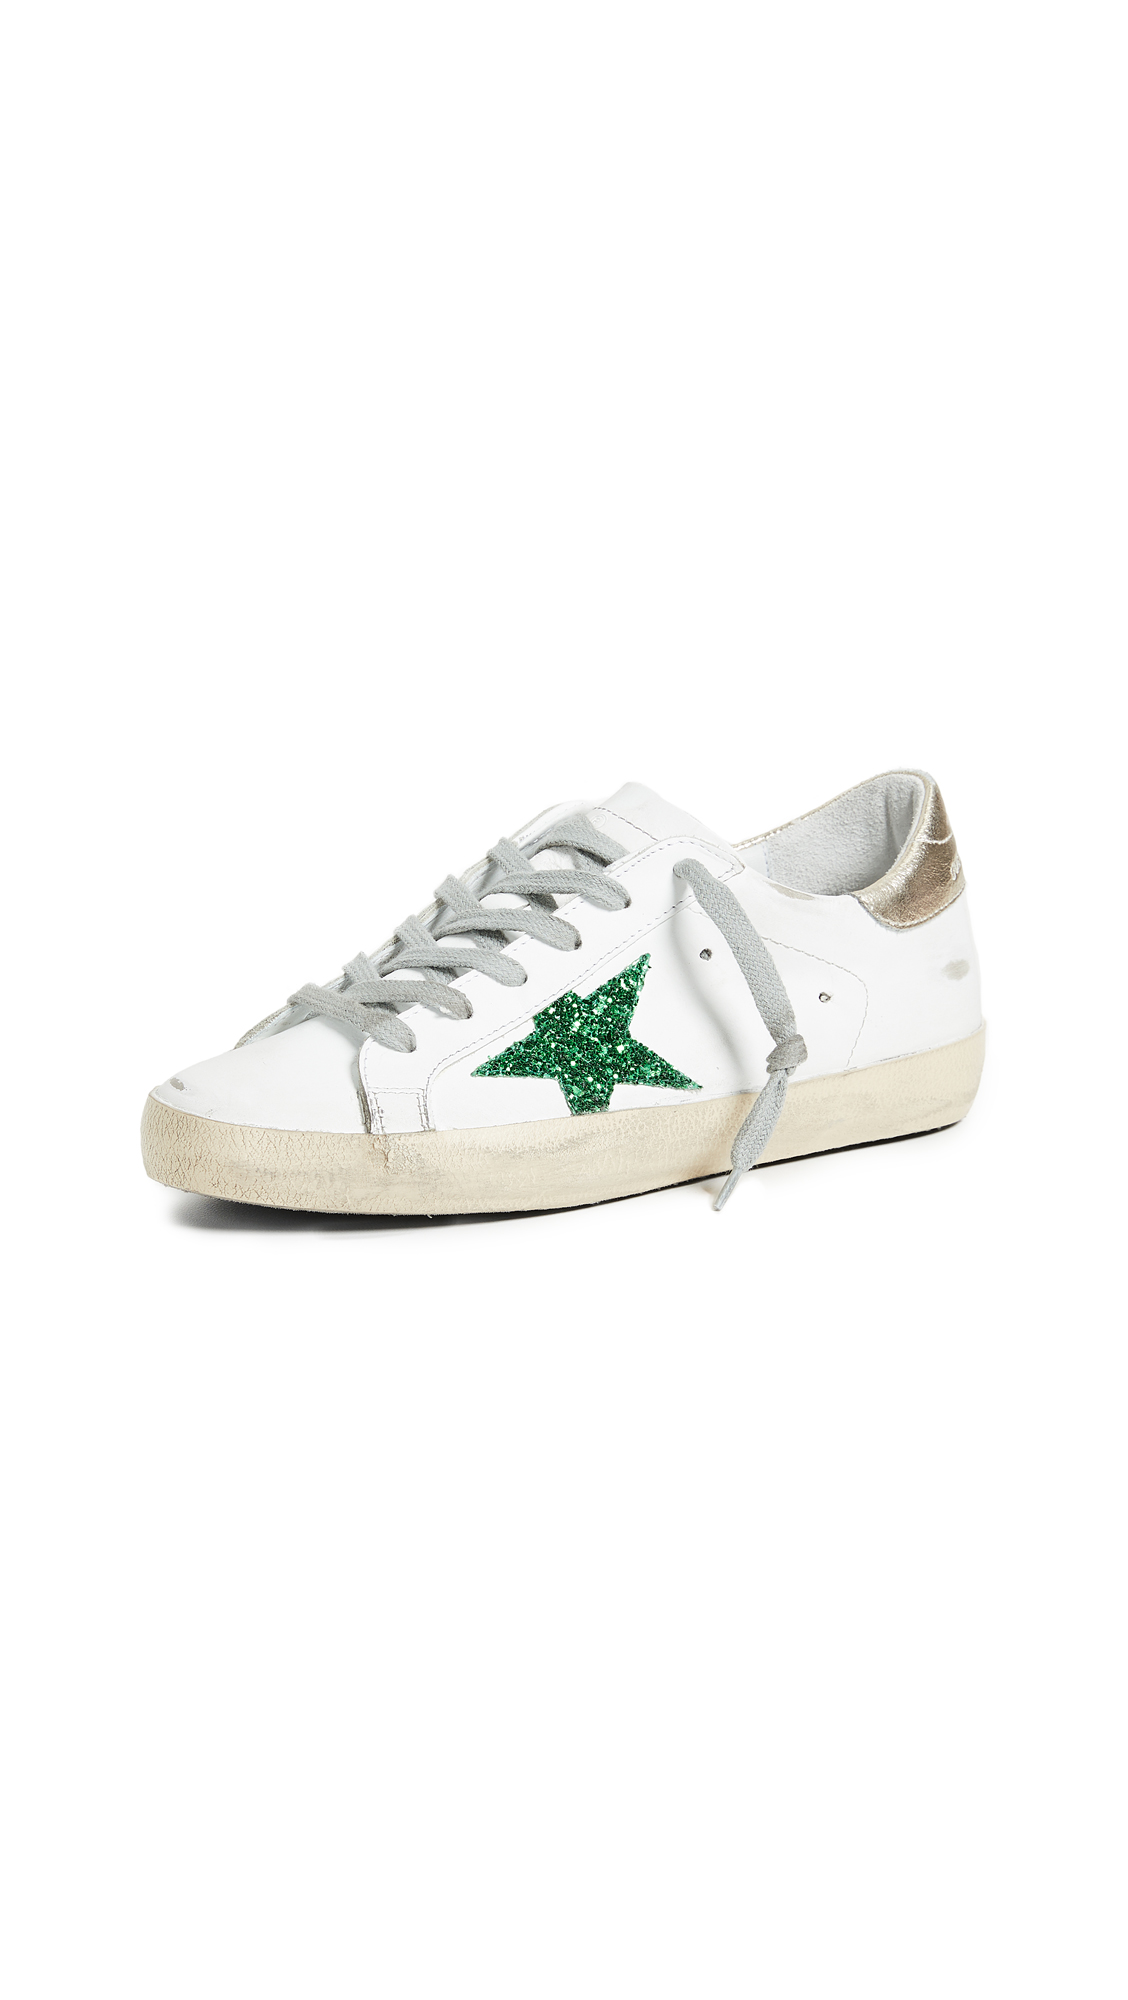 Golden Goose Superstar Sneakers - White/Green